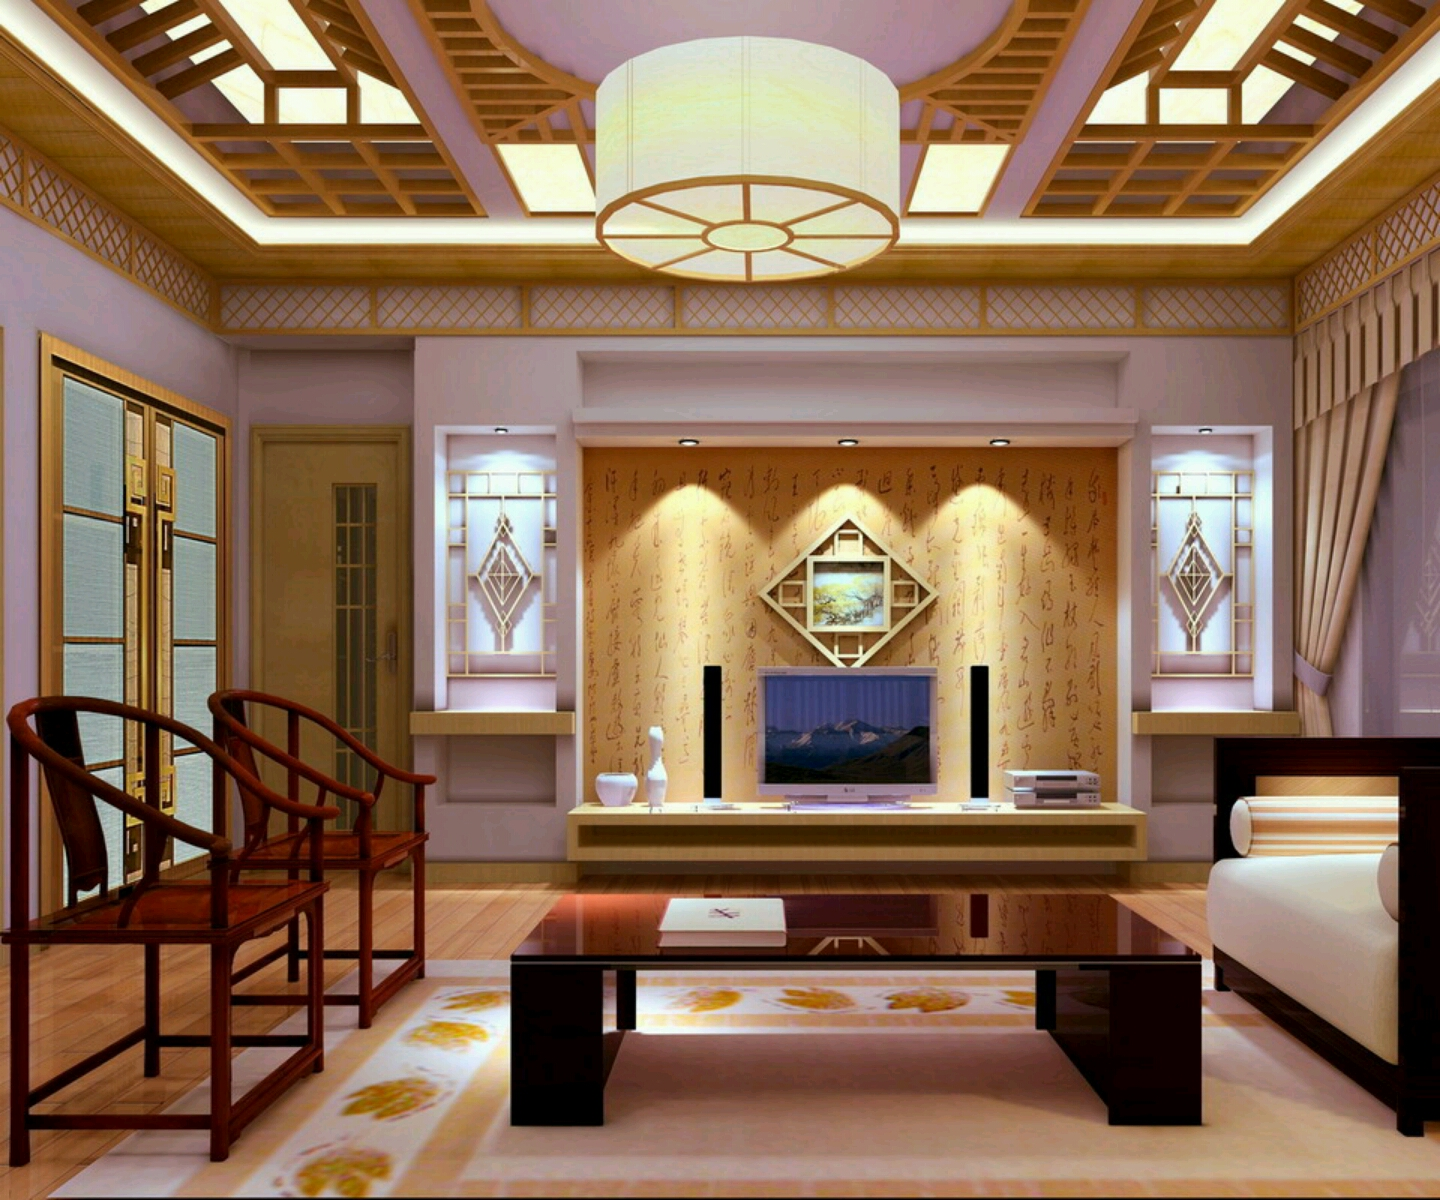 New home designs latest homes interior designs studyrooms for How to design a house interior